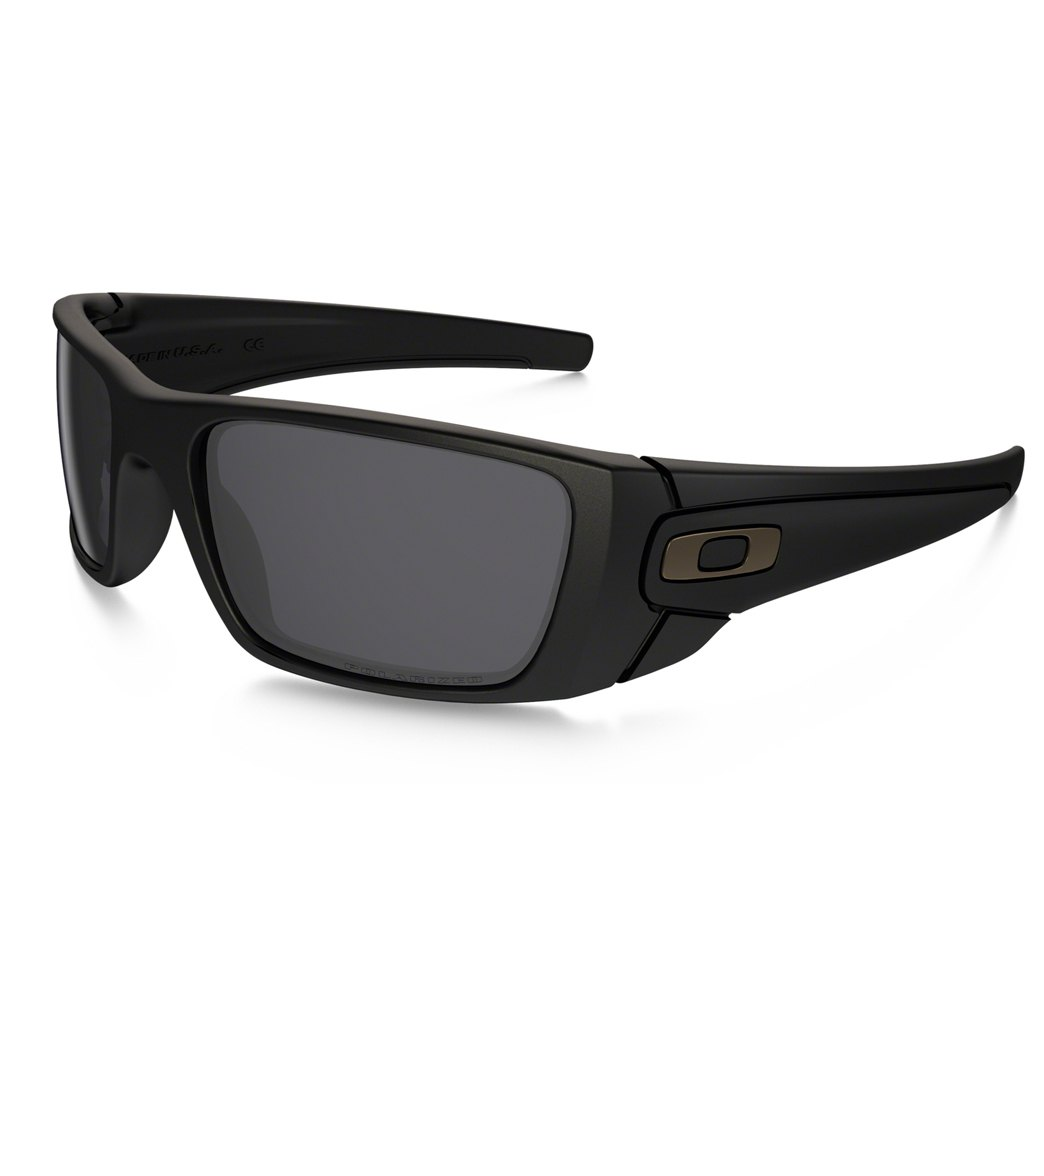 61c8392deb2 Oakley Men s Fuel Cell Polarized Sunglasses at SwimOutlet.com - Free  Shipping